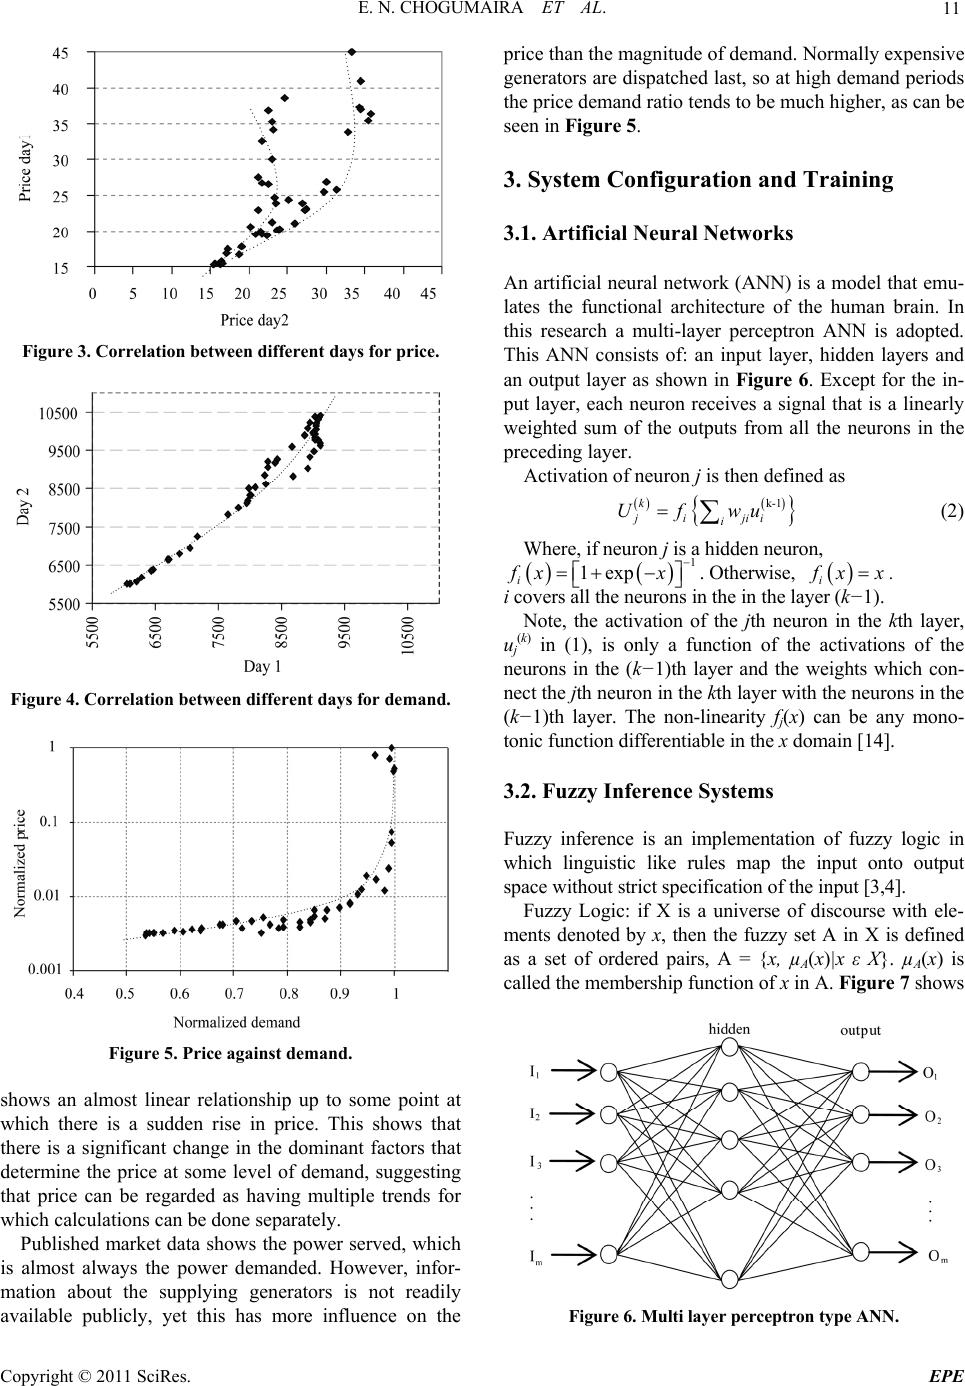 term paper on neural networks The history of artificial neural networks information technology essay d:\download 2013\downloads\images (20)jpg neural networks have tree-like networks of nerve.